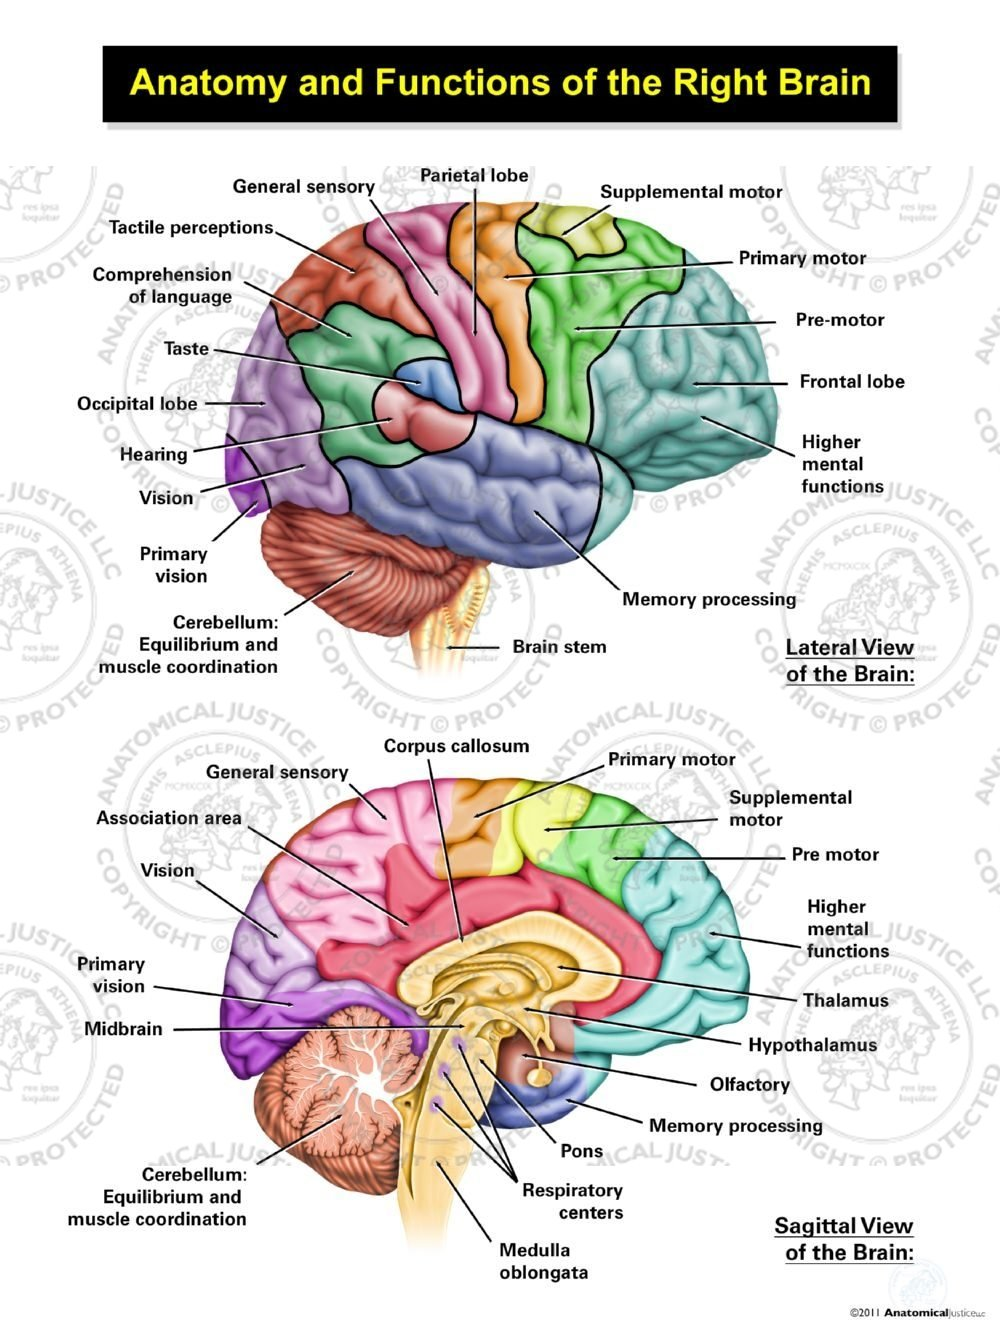 Anatomy And Functions Of The Right Brain Anatomical Justice